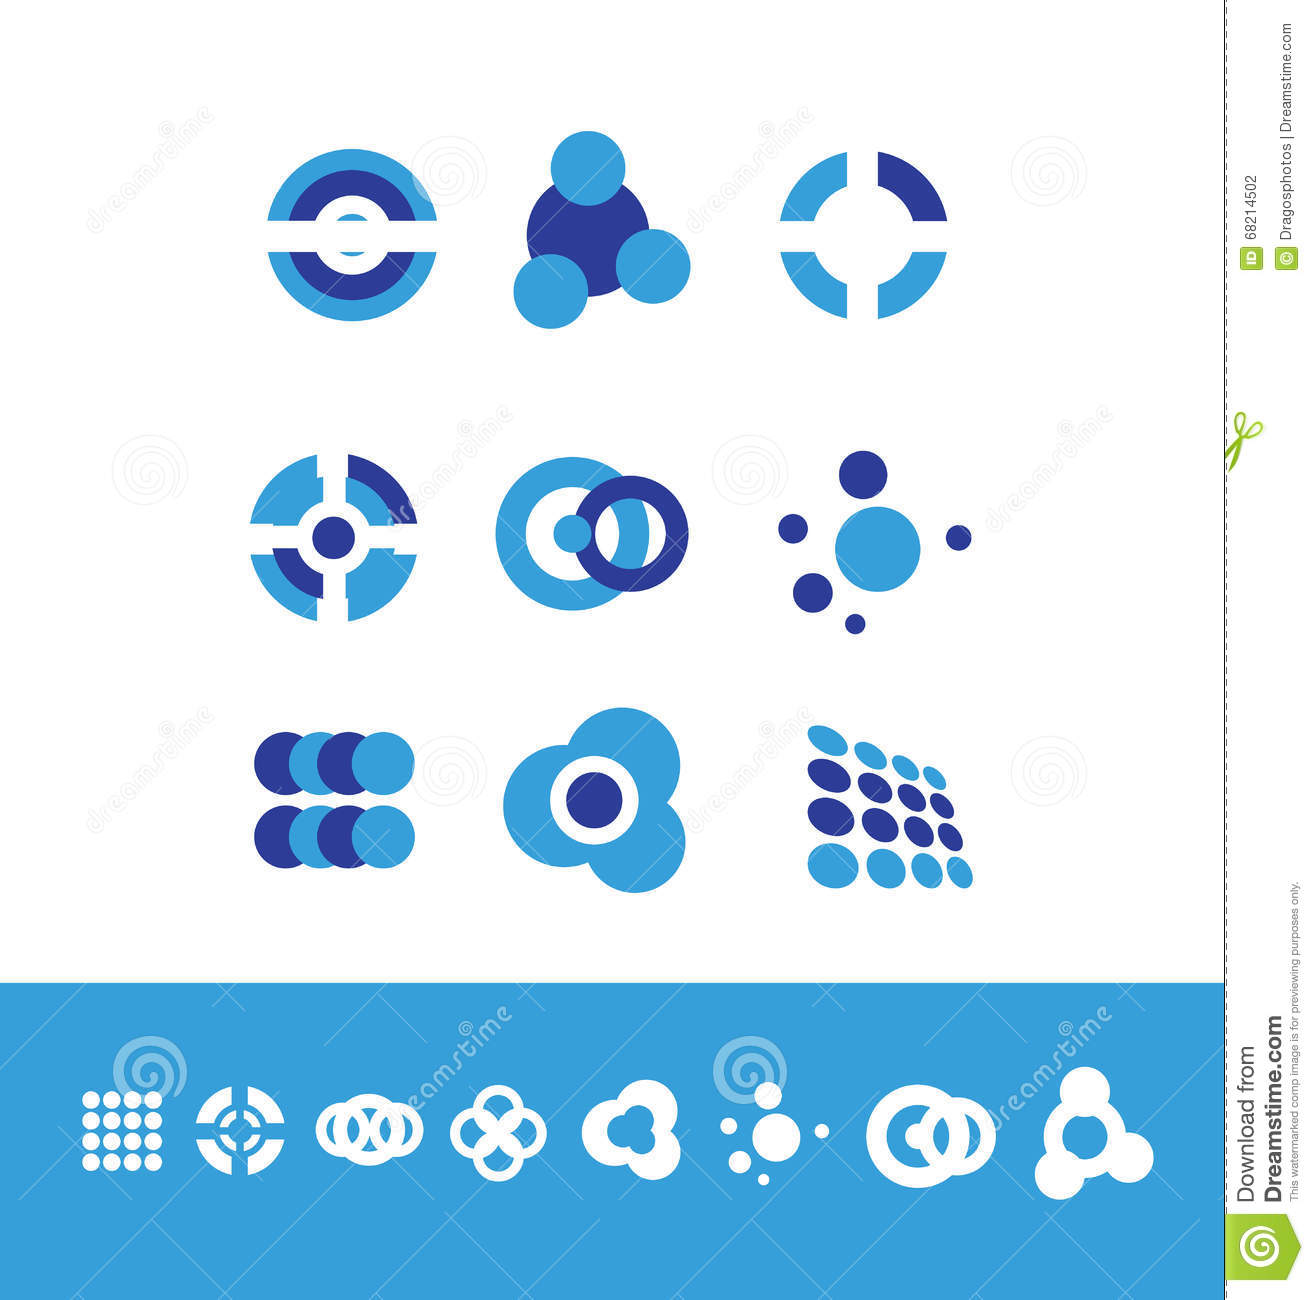 Corporate Business Logo Set Circle Stock Vector - Illustration of ...